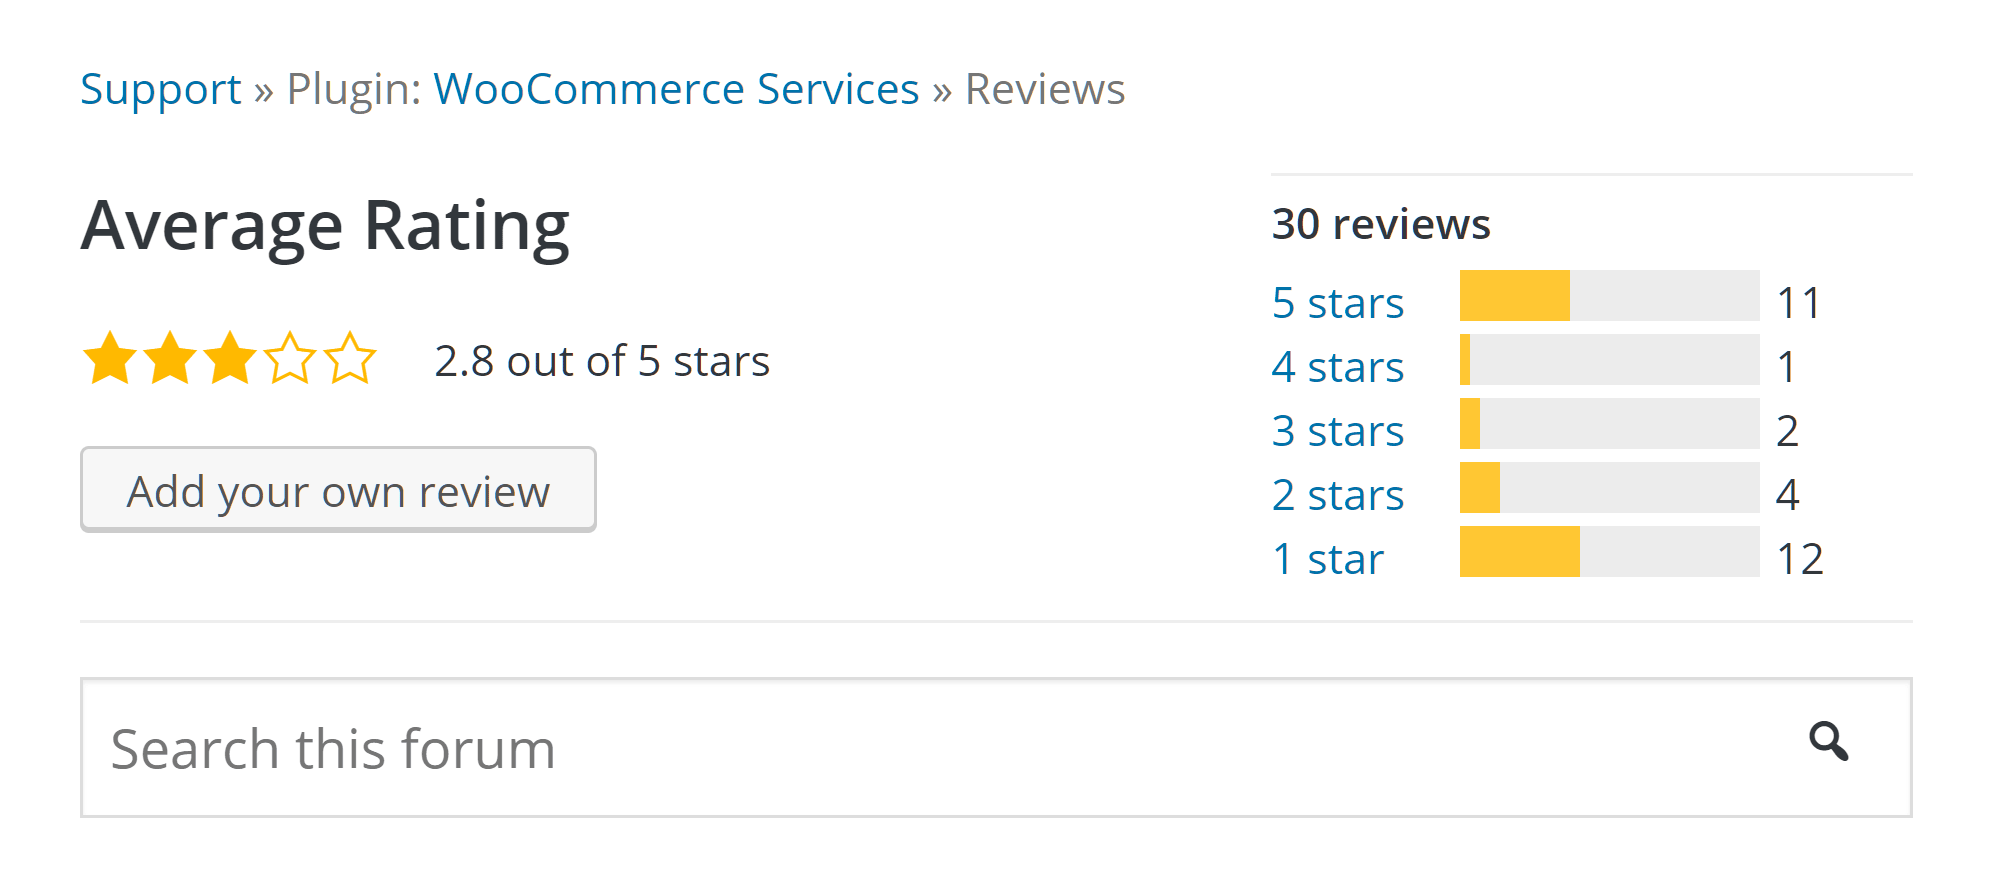 WooCommerce Services User Reviews and Ratings